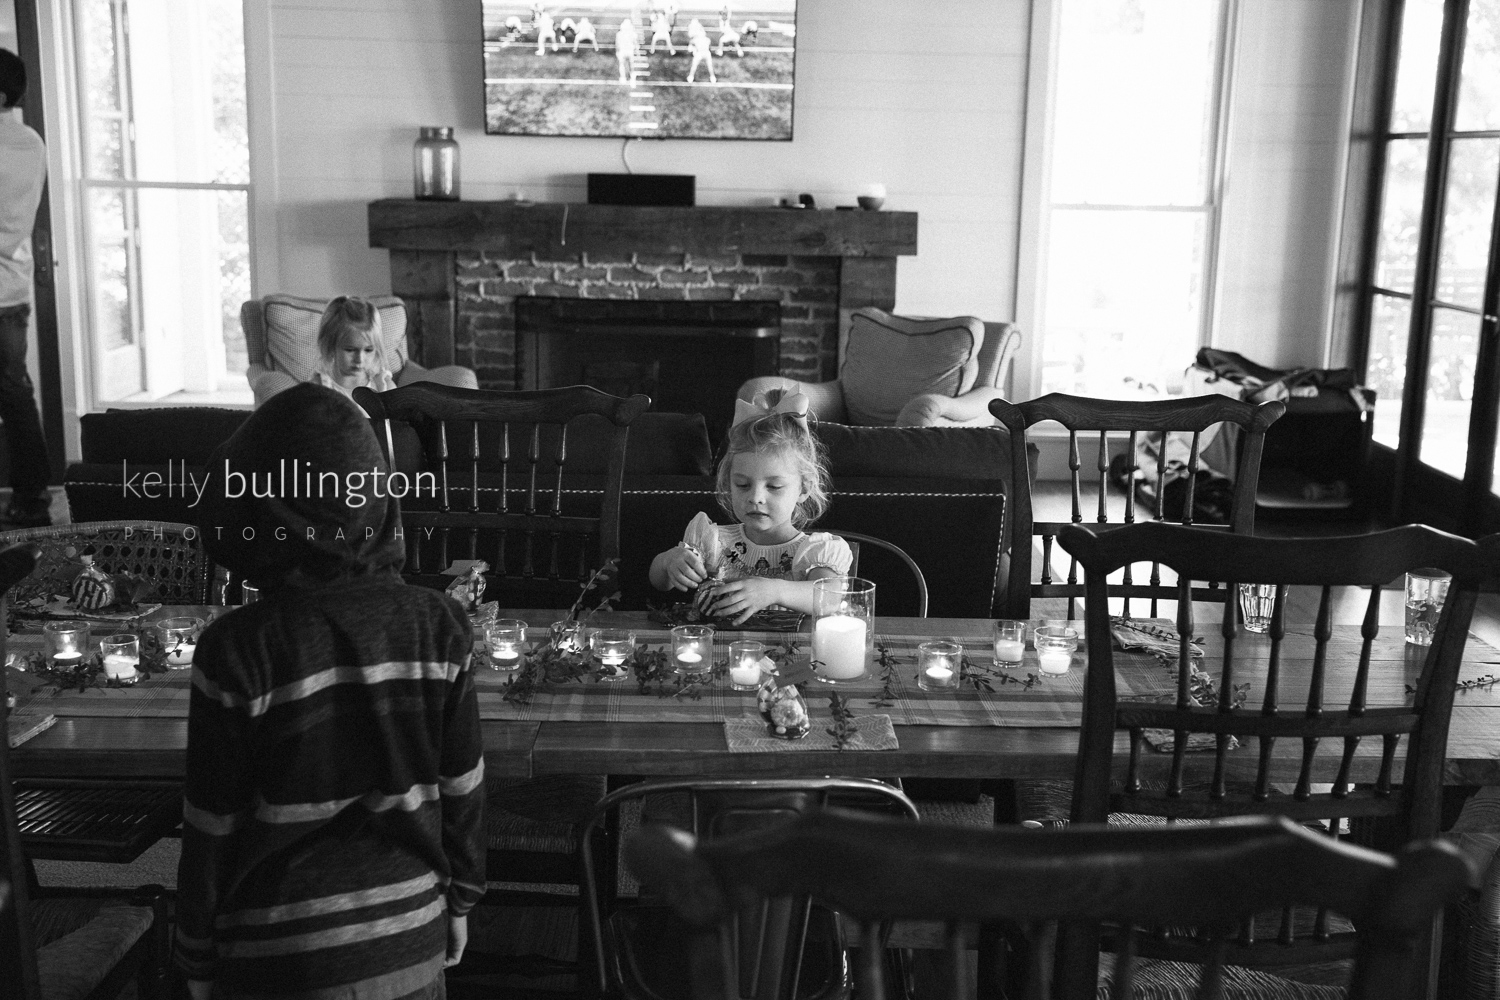 Fairhope_Family_Kelly_Bullington_Photography-26.jpg